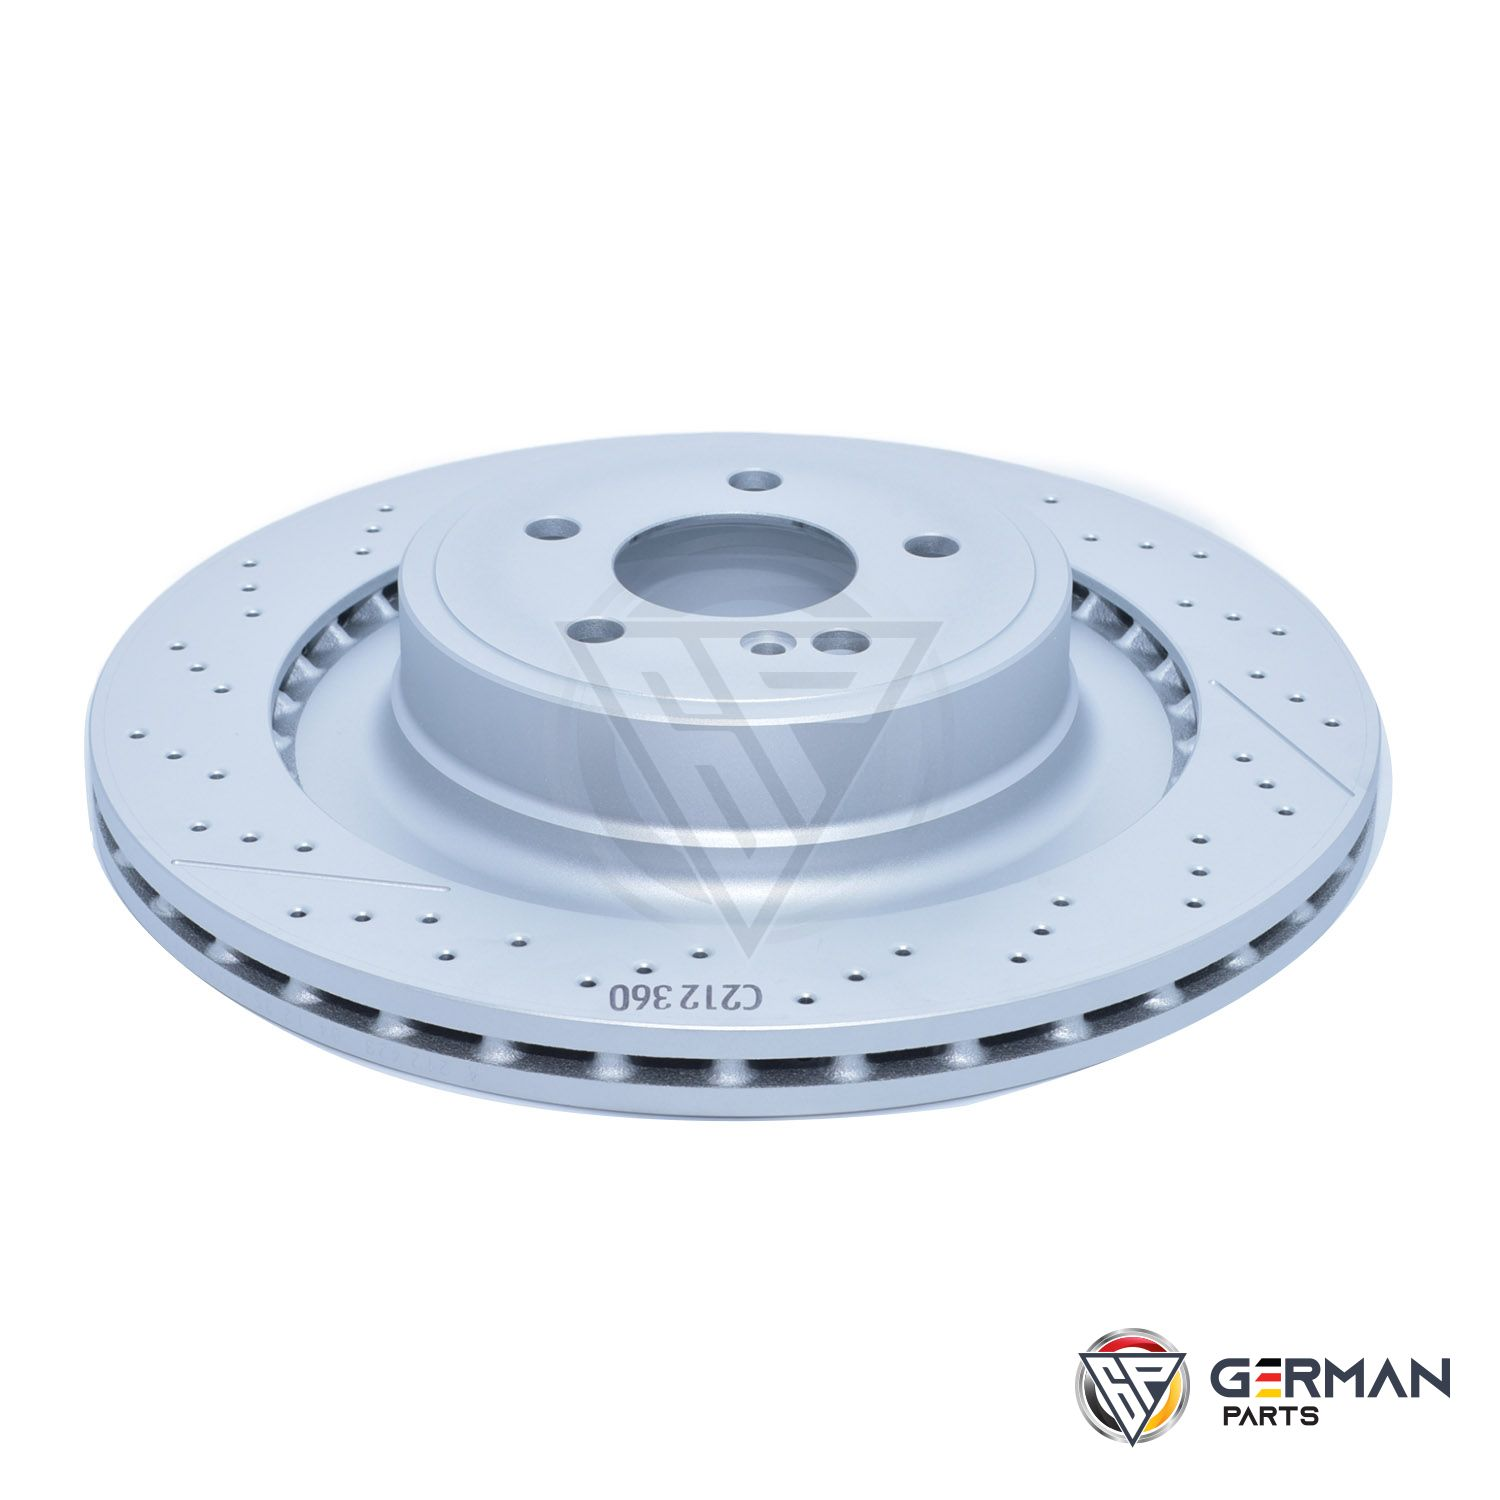 Buy Mercedes Benz Rear Brake Disc 2124230412 - German Parts